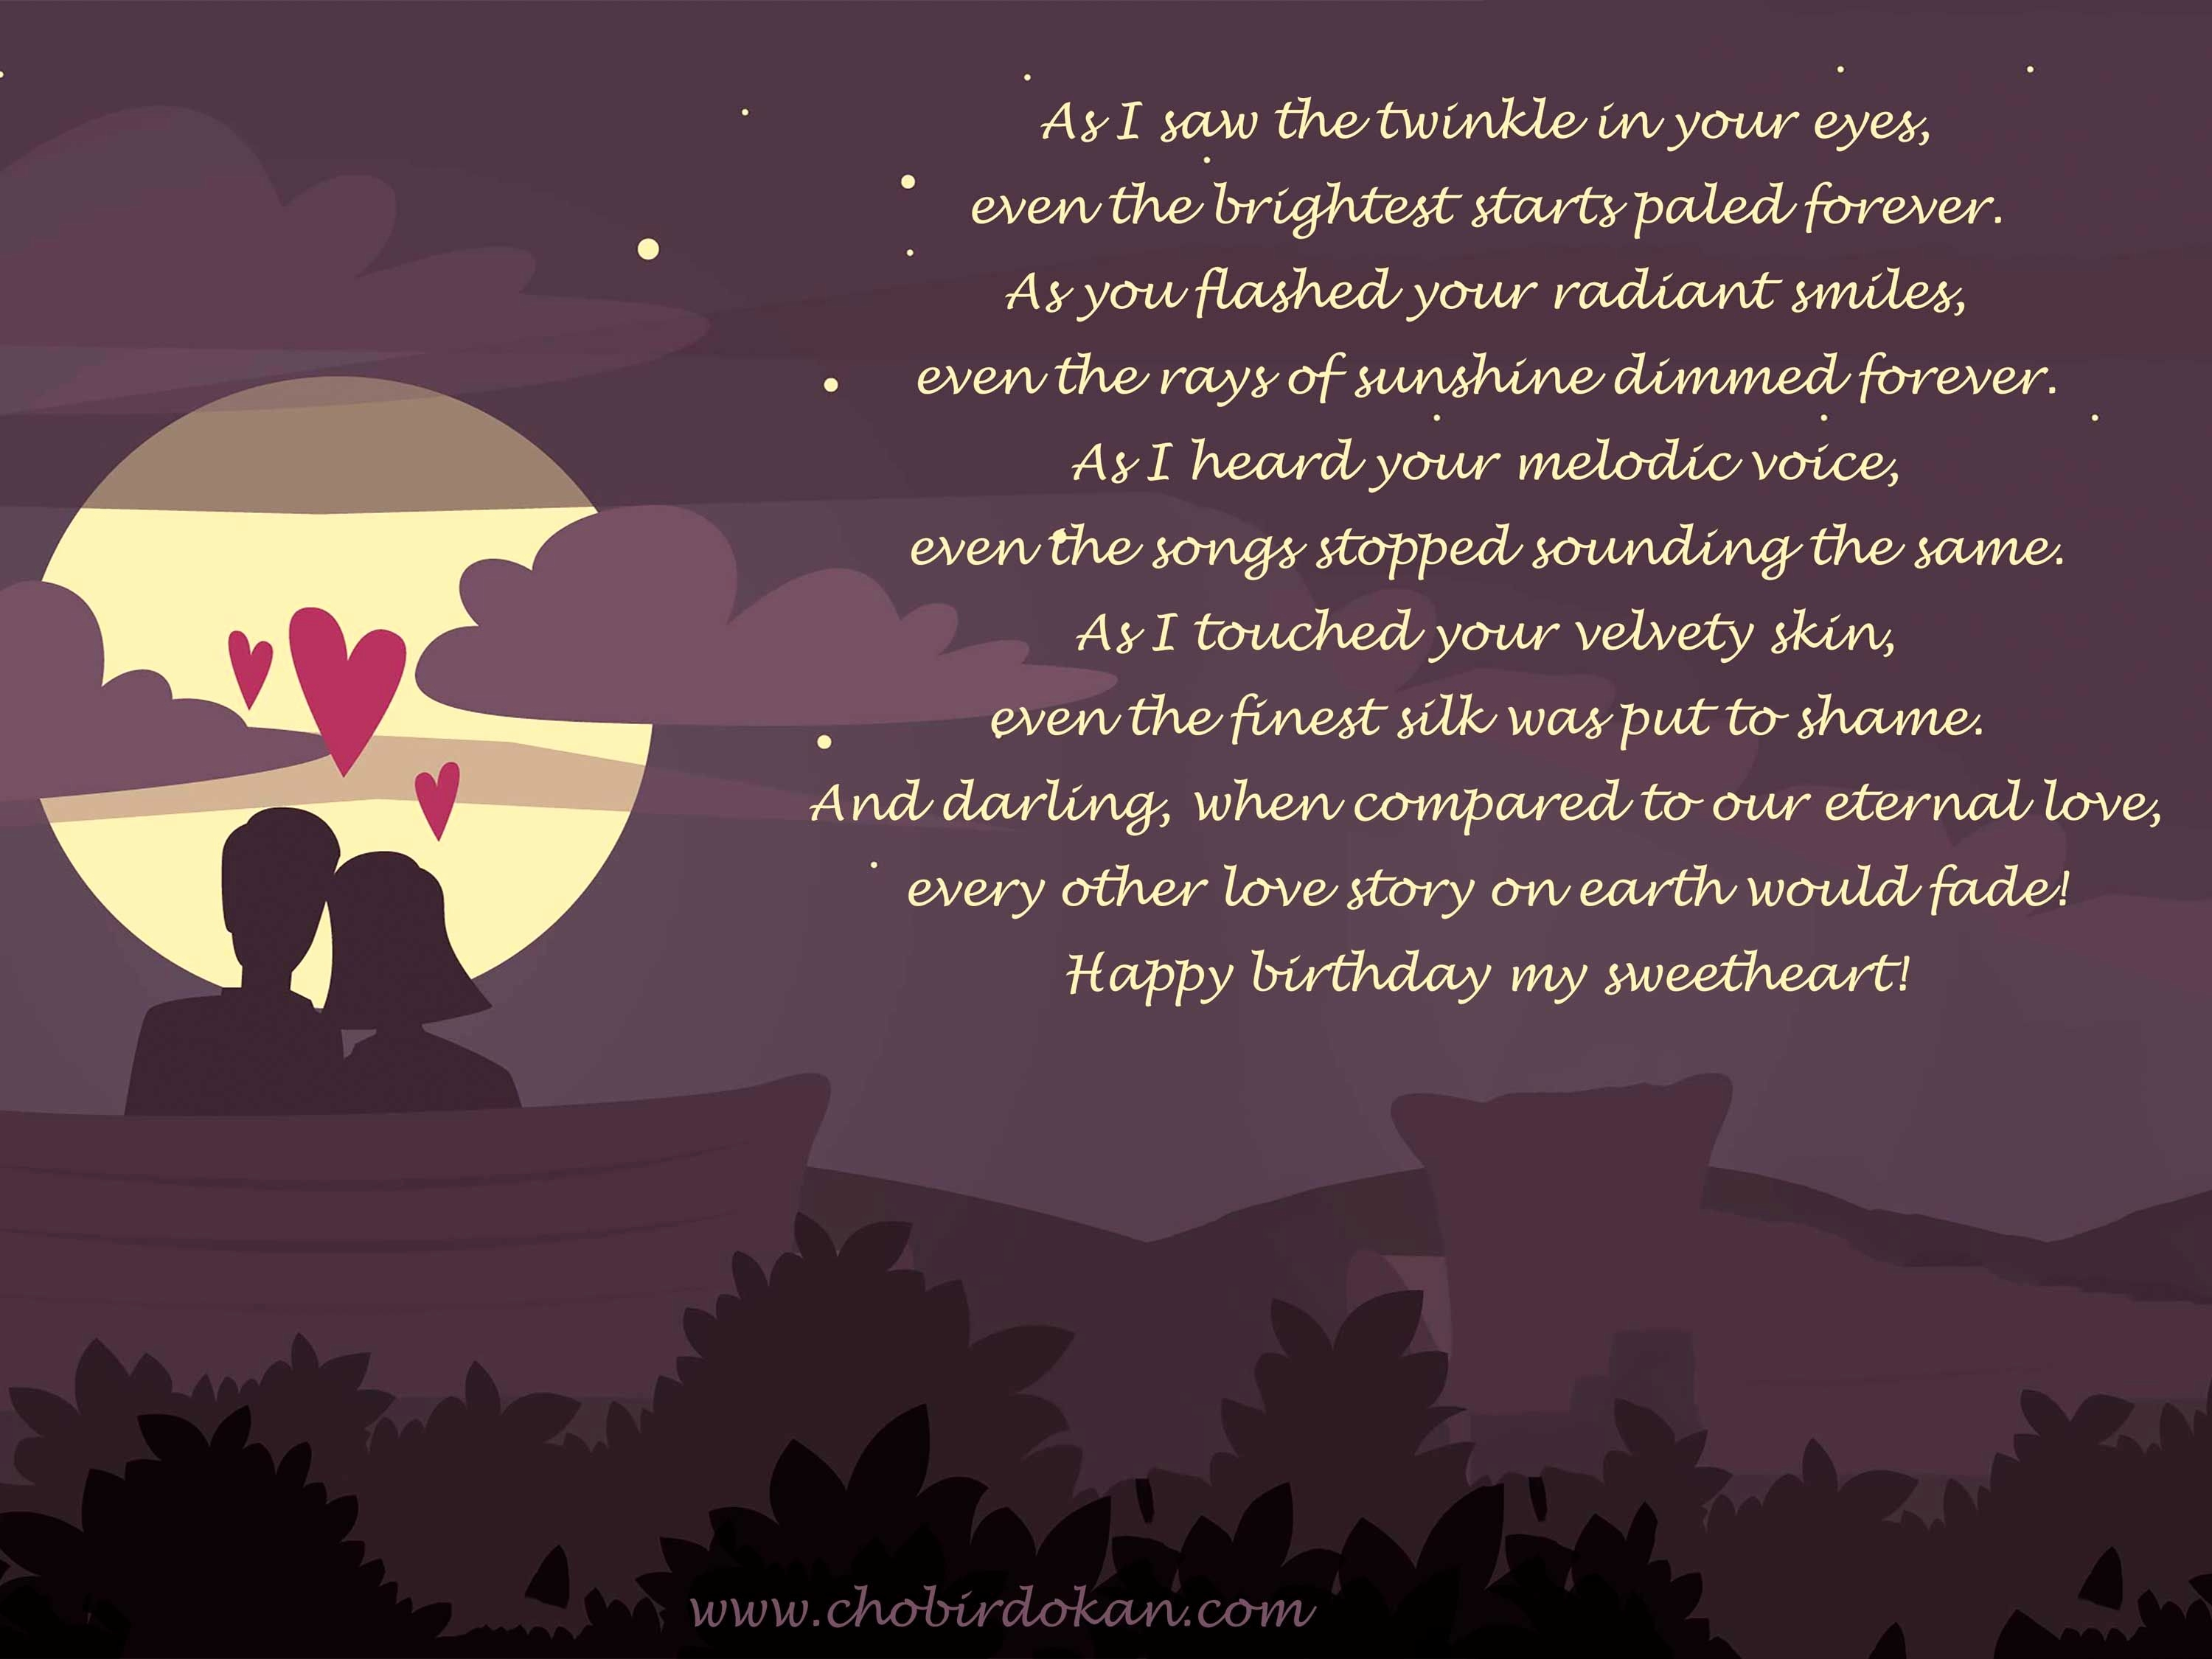 a poem for my wife on her birthday ; birthday-poems-for-him-awesome-cute-happy-birthday-poems-for-her-birthday-messages-pinterest-of-birthday-poems-for-him